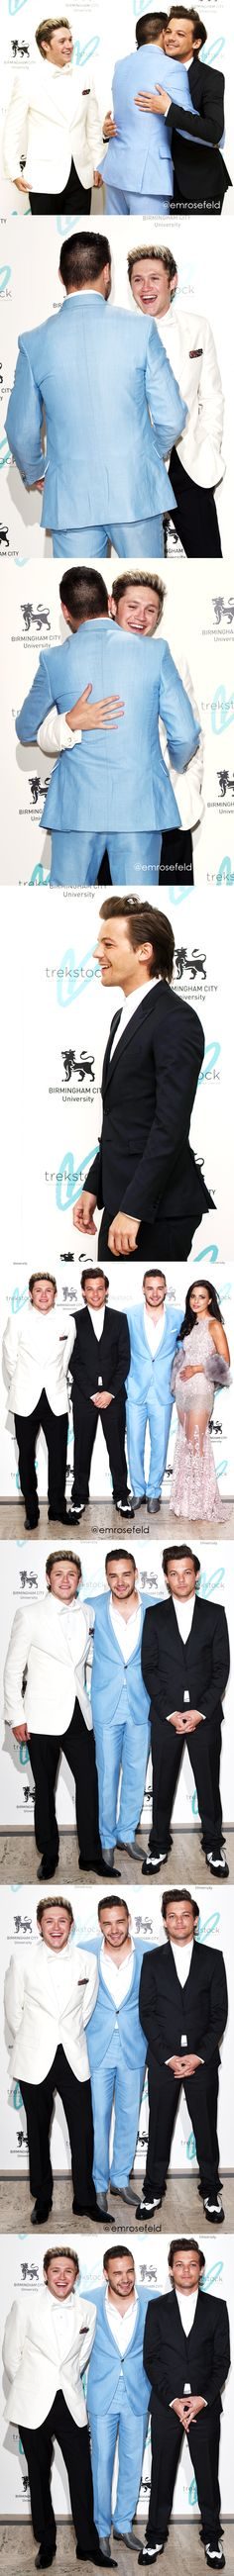 One Direction | at The Great Gatsby Ball for Trekstock 4.16.15 |